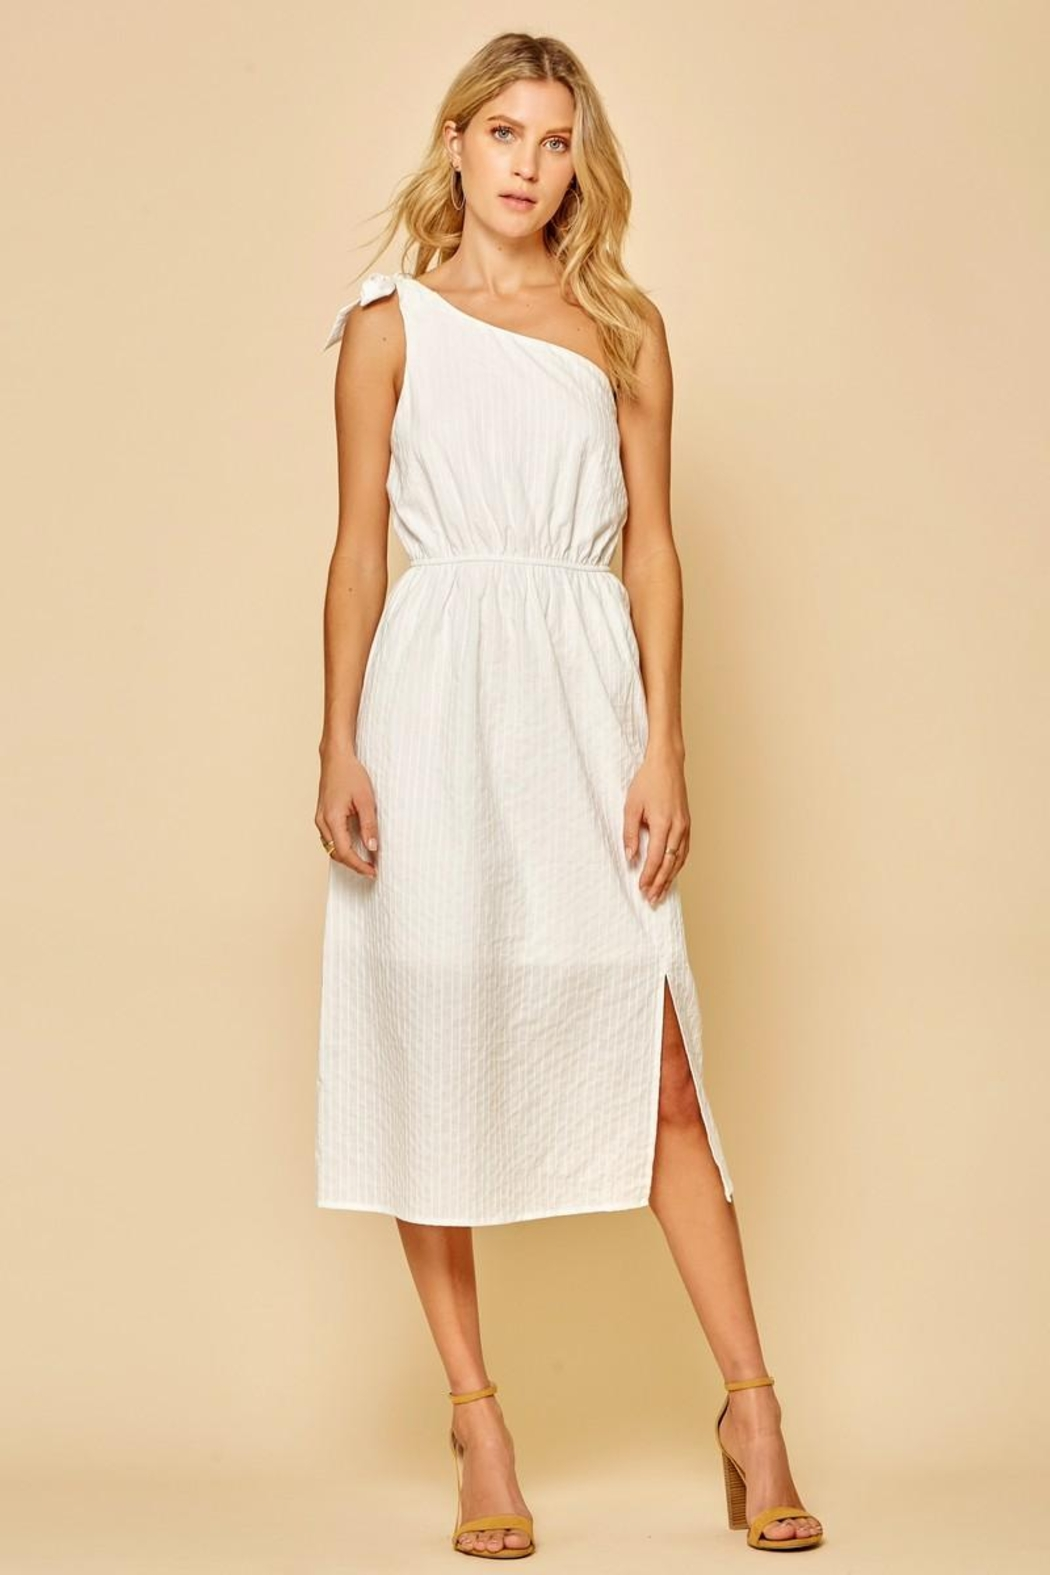 Andree by Unit One-Shoulder Midi Dress - Main Image